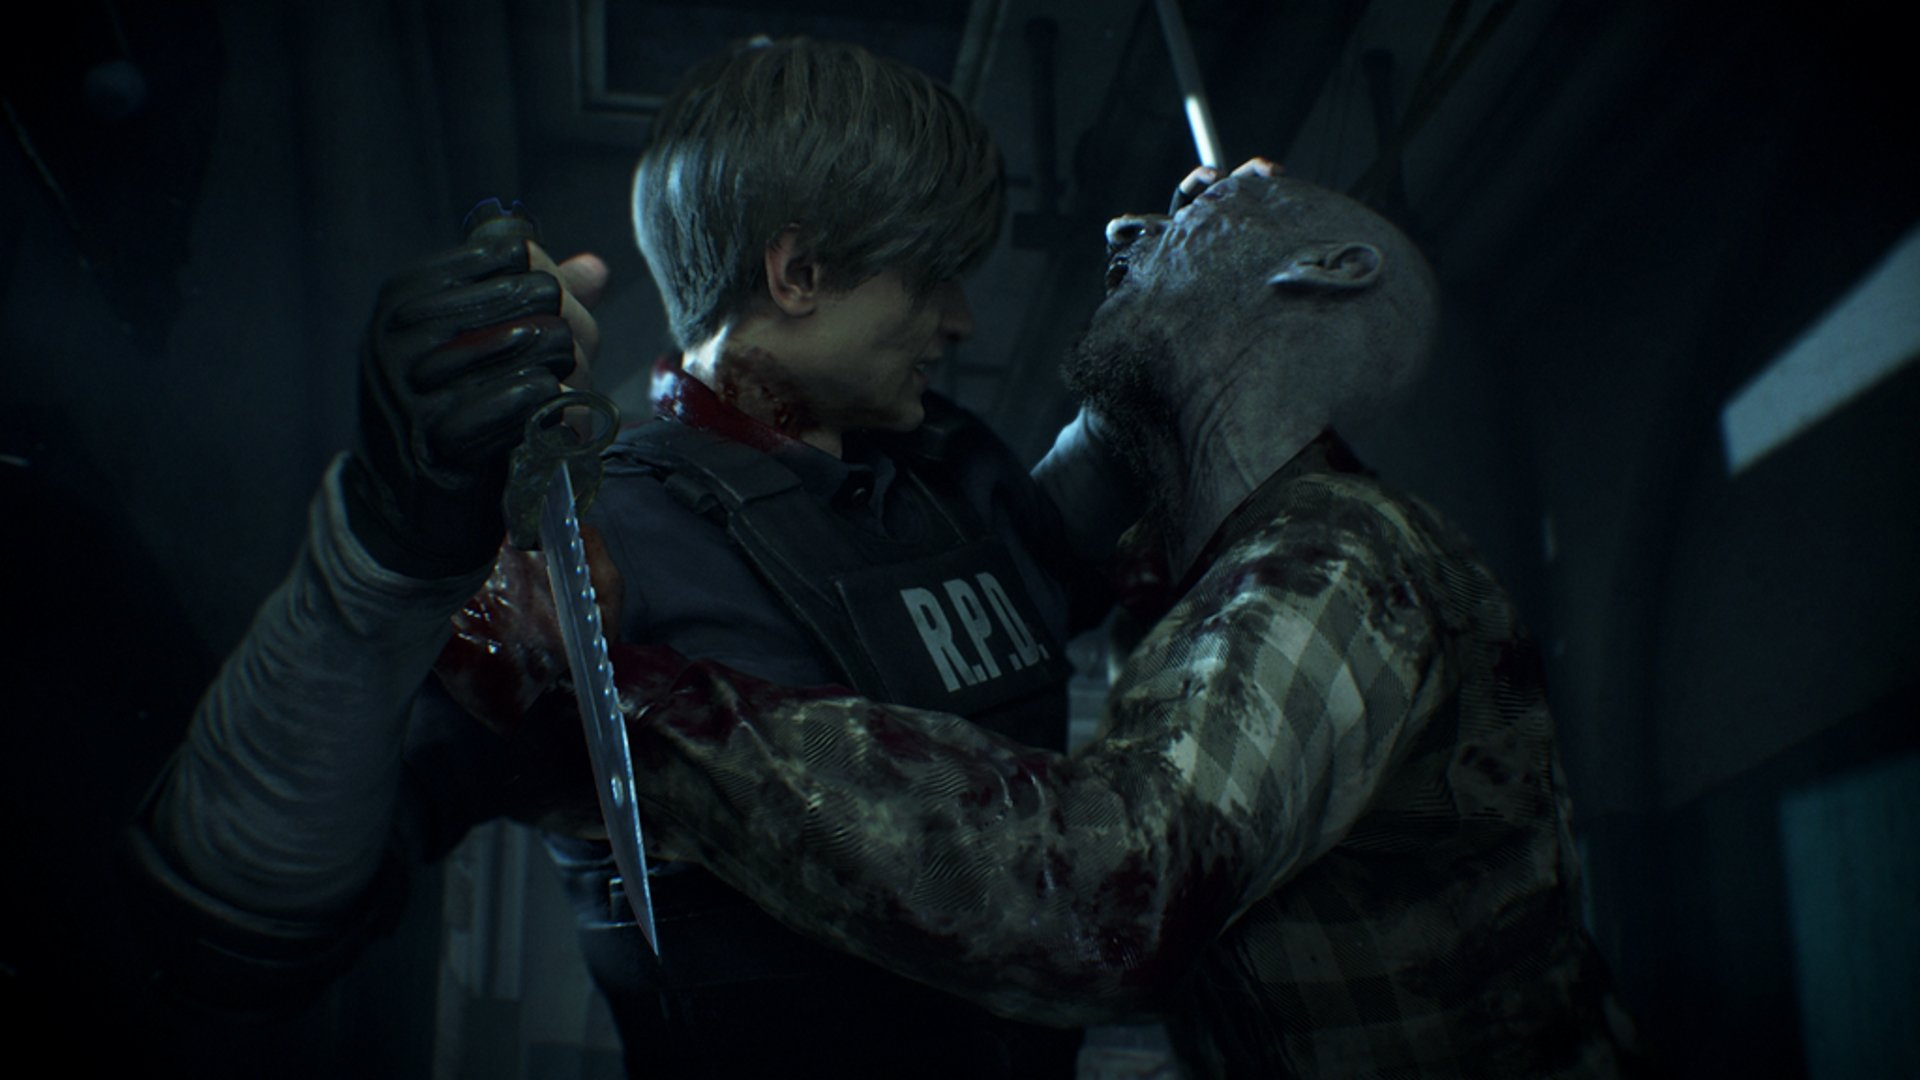 La démo 1-Shot de Resident Evil 2 accorde 30 minutes d'action